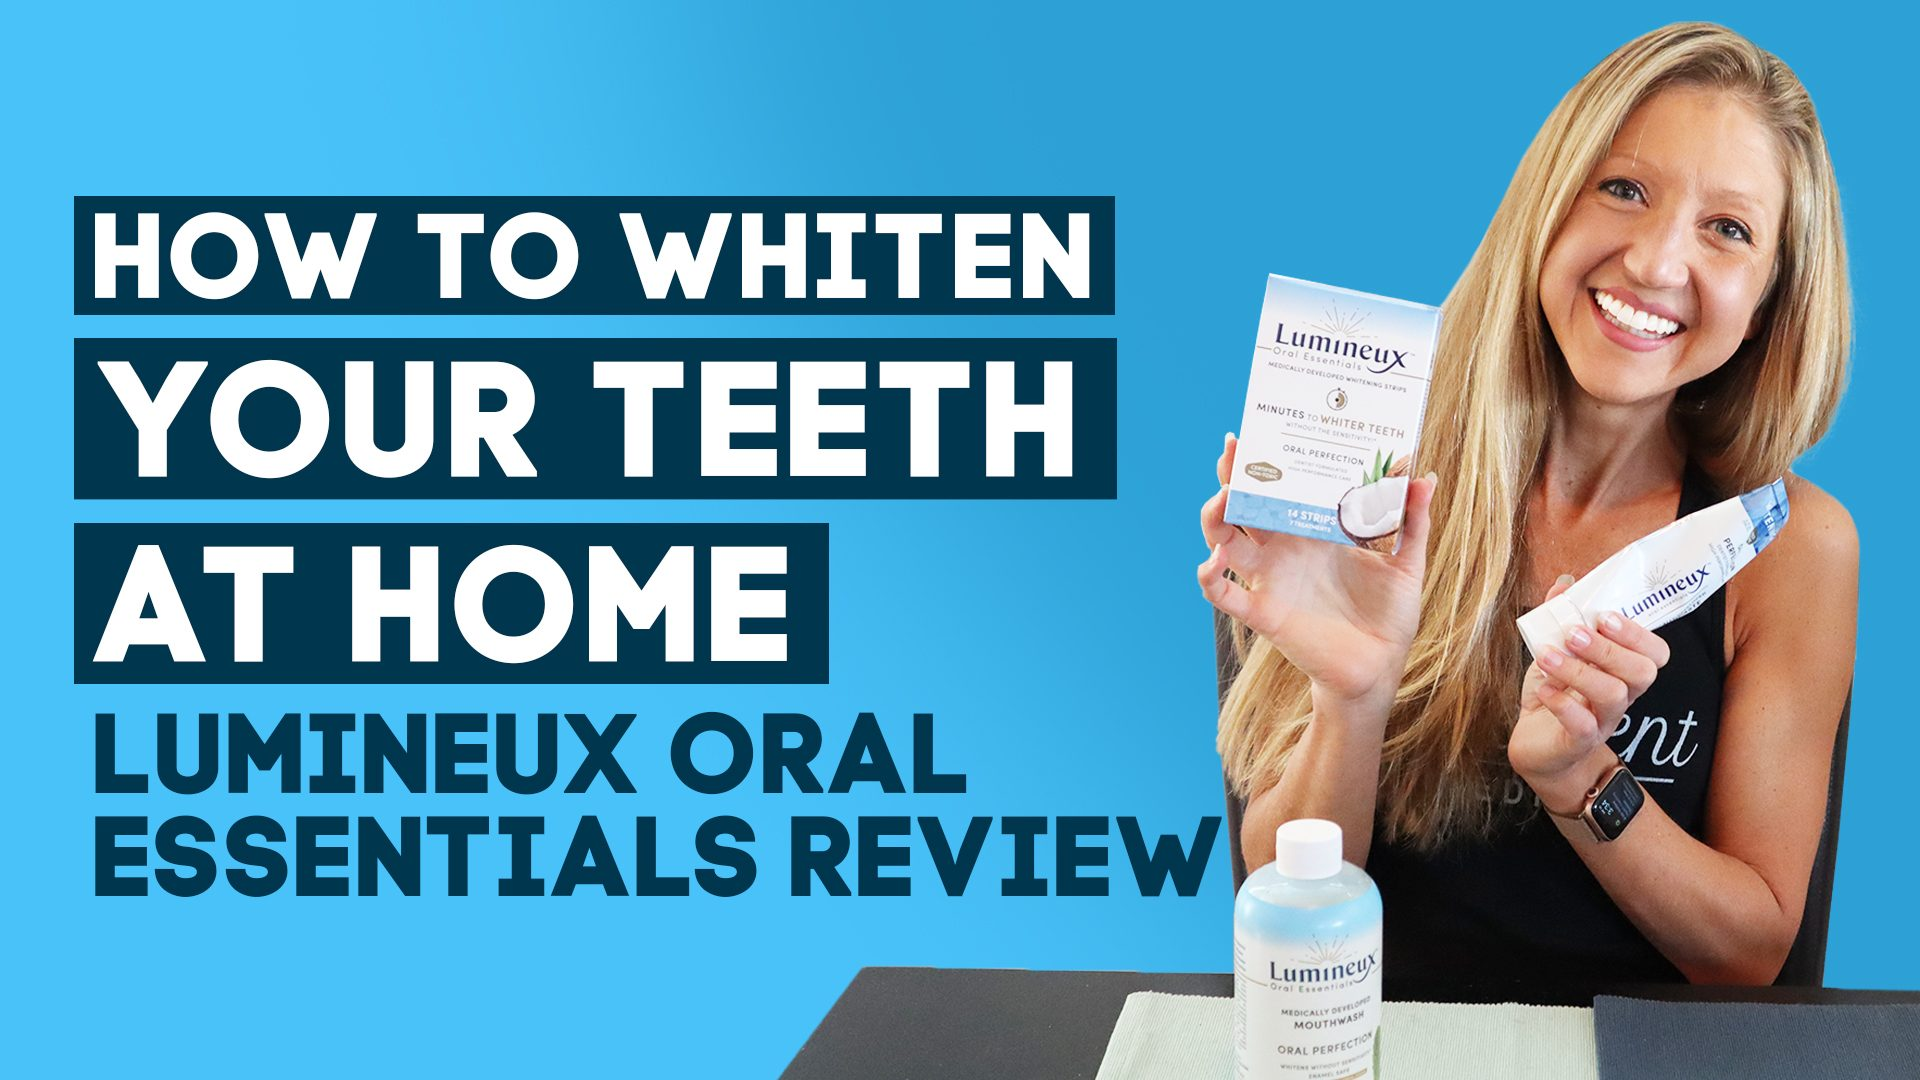 How to Whiten Teeth at Home Naturally Fast Lumineux Oral Essentials Review 3